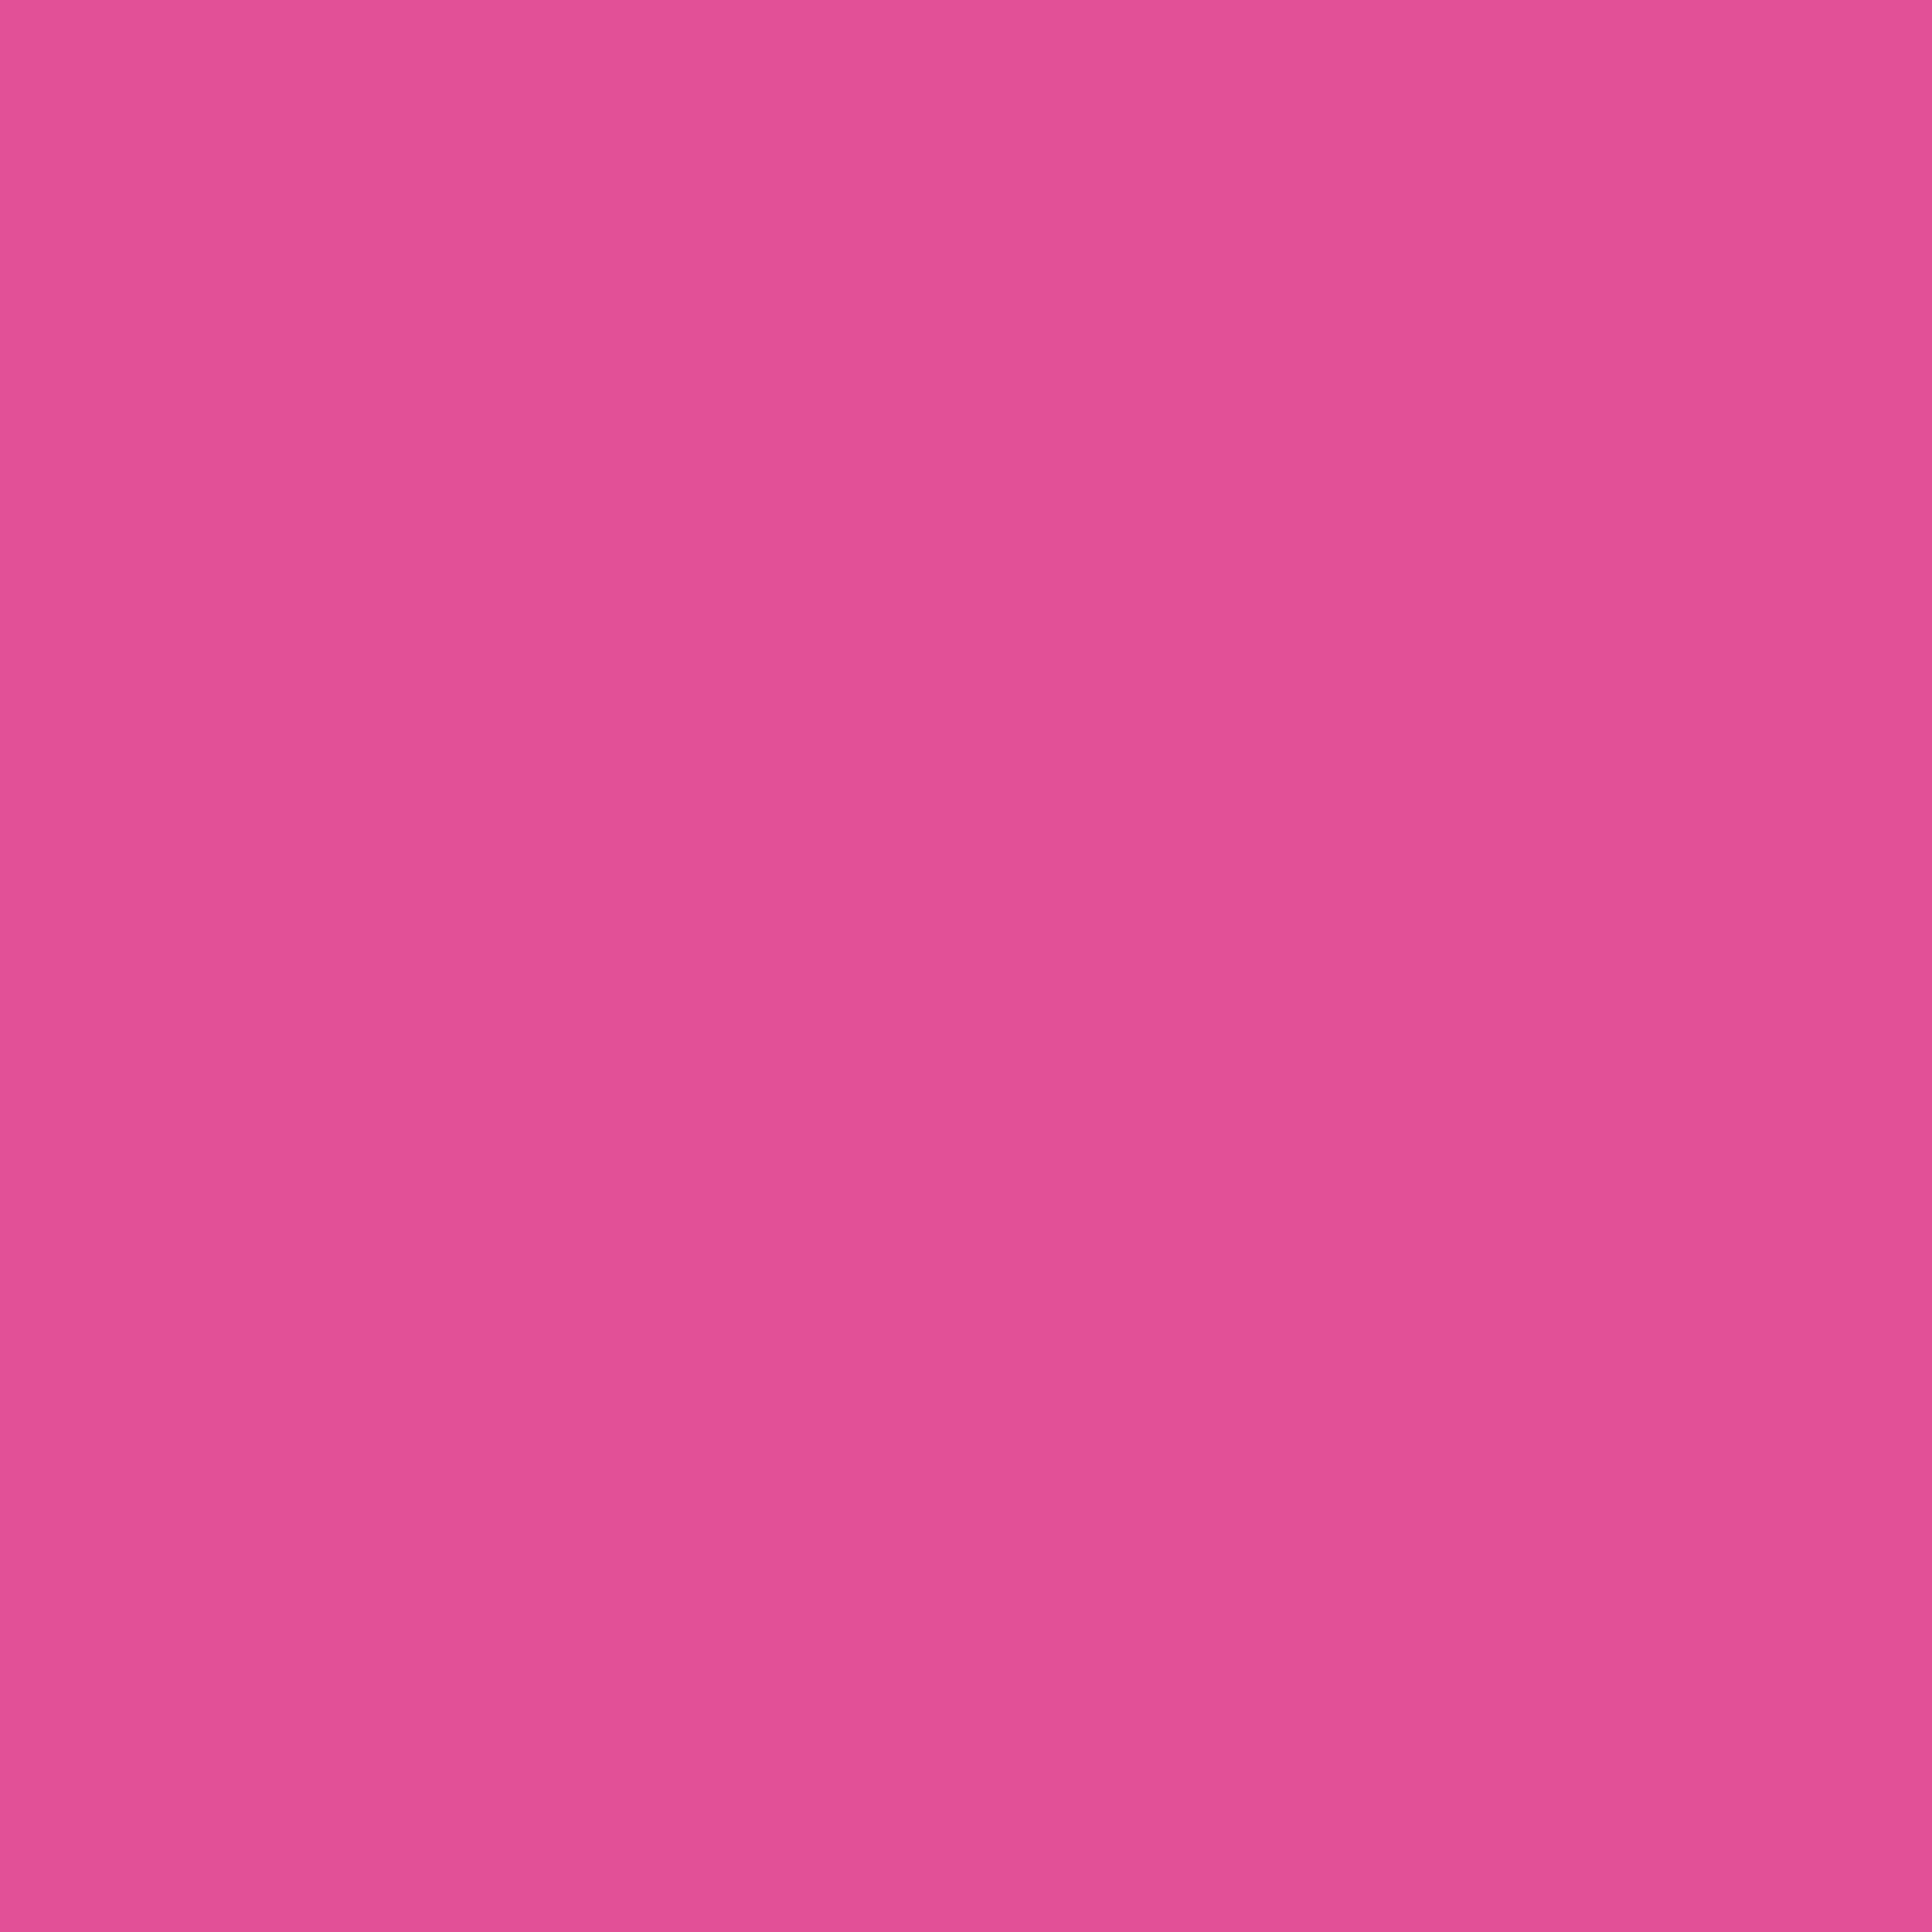 2048x2048 Raspberry Pink Solid Color Background